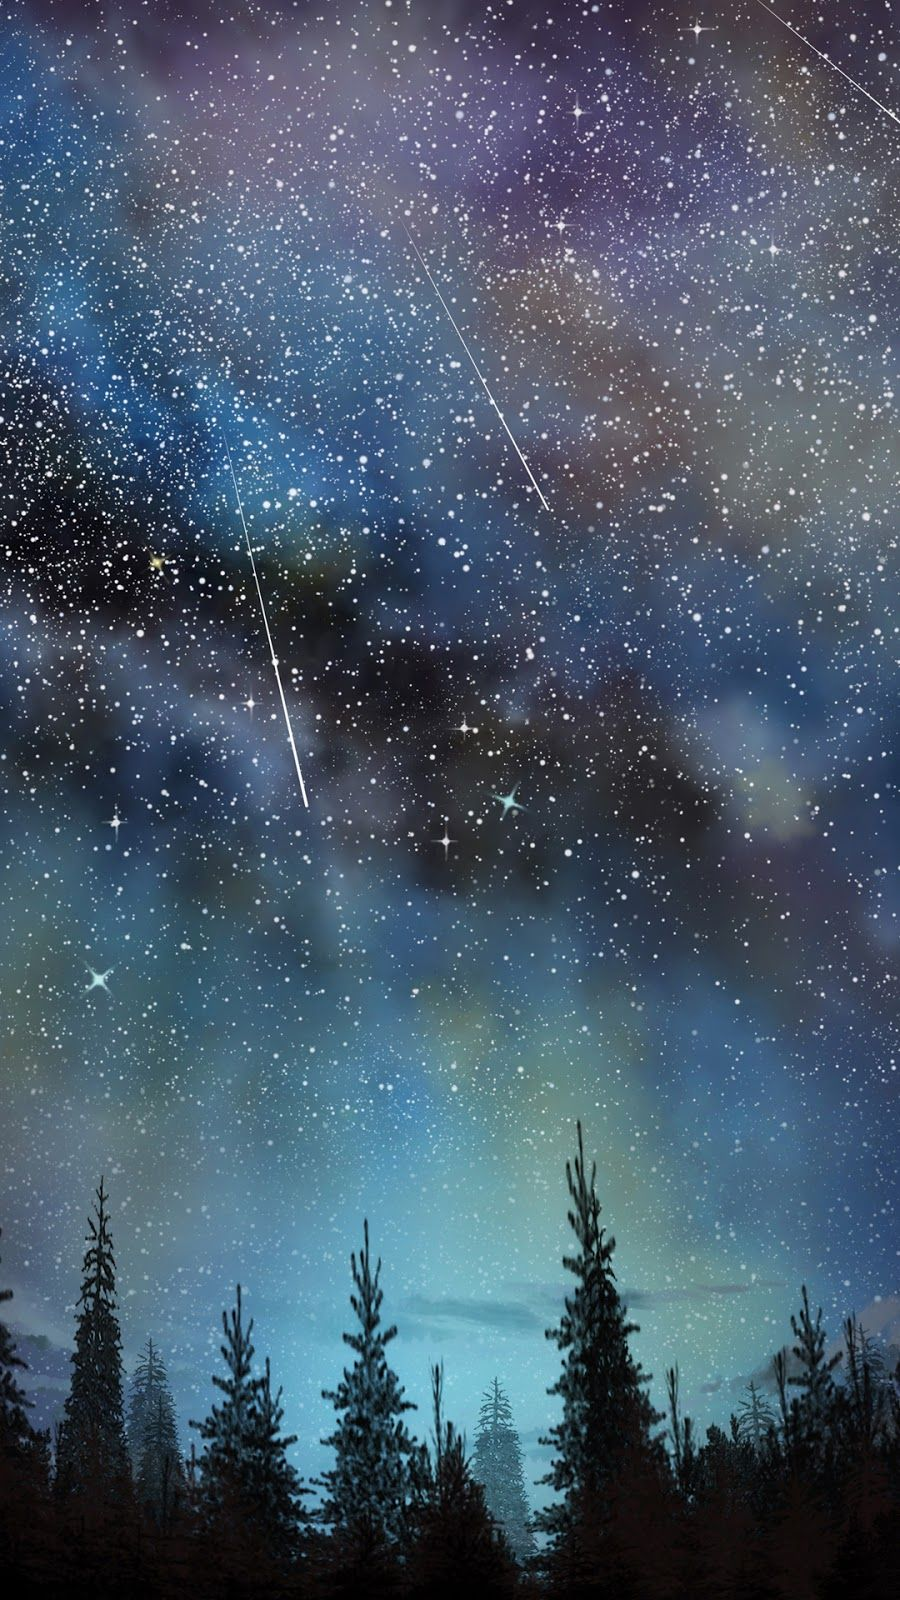 Shooting Star Background In 2020 Star Background Galaxy Wallpaper Star Sky